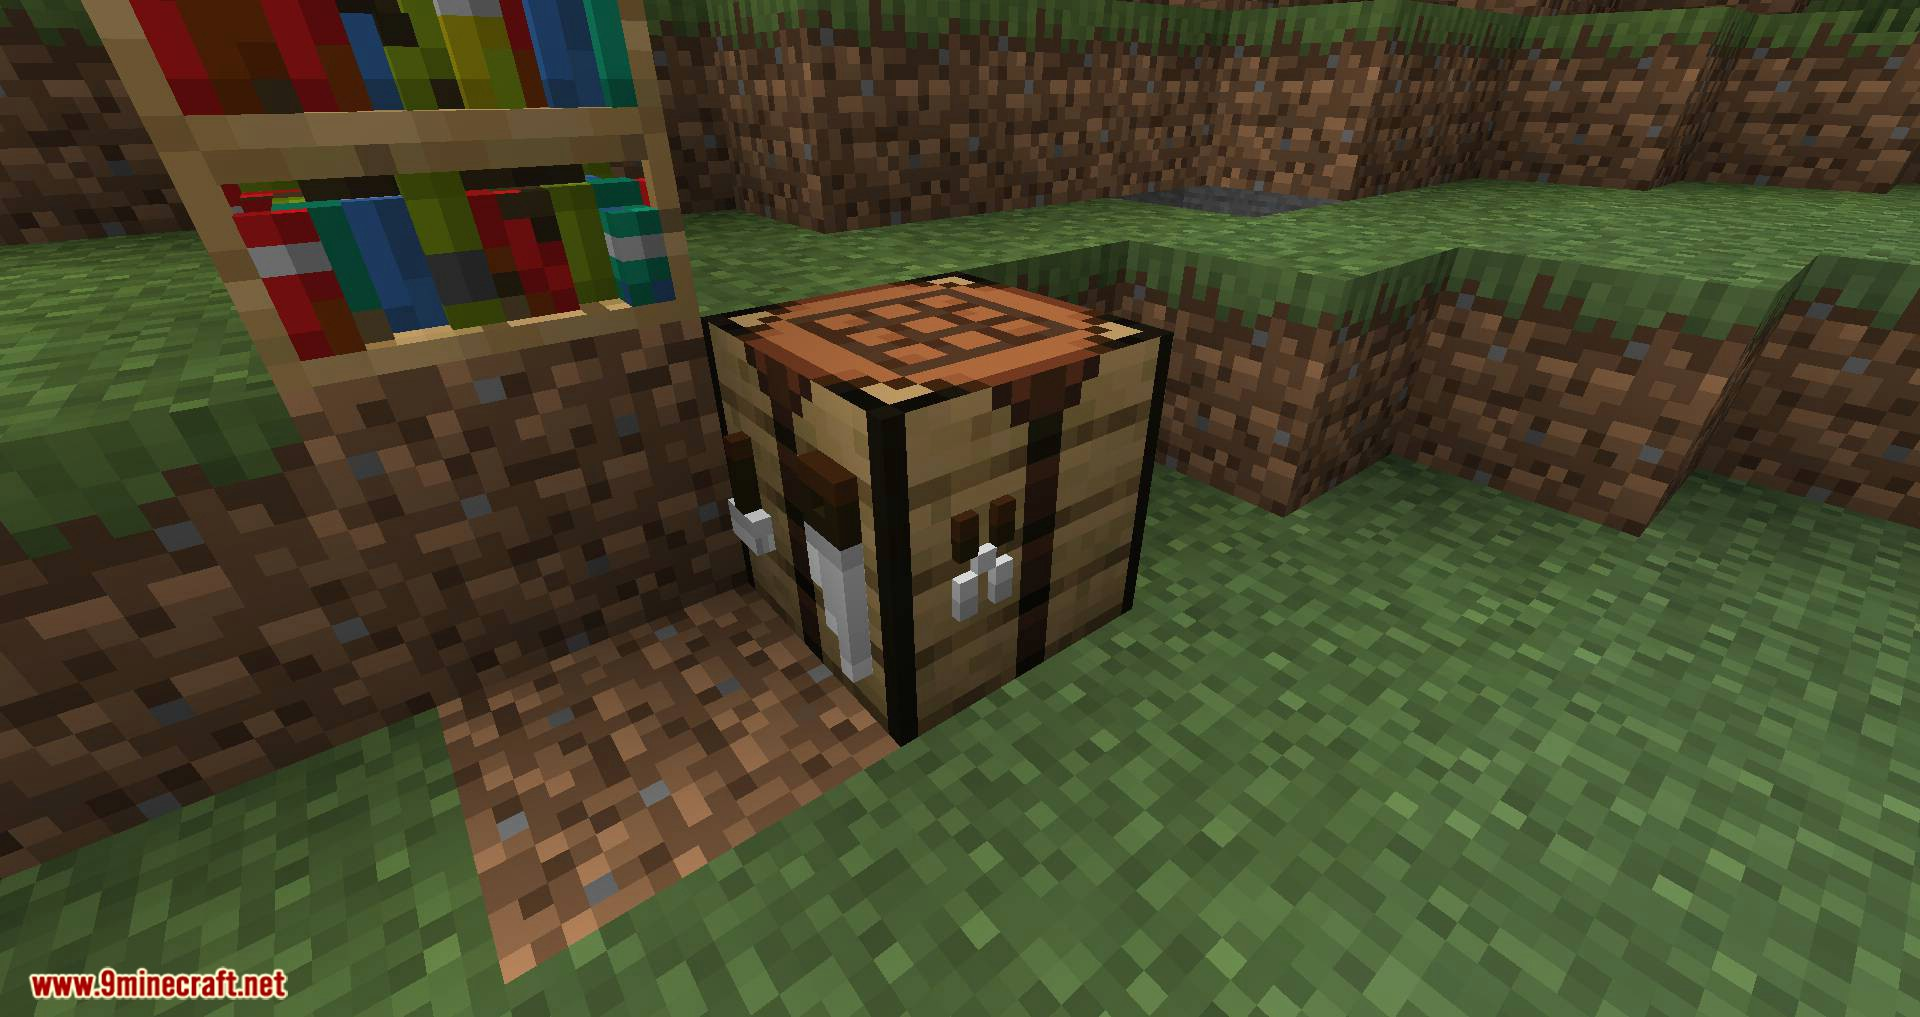 Aestheticism mod for minecraft 07